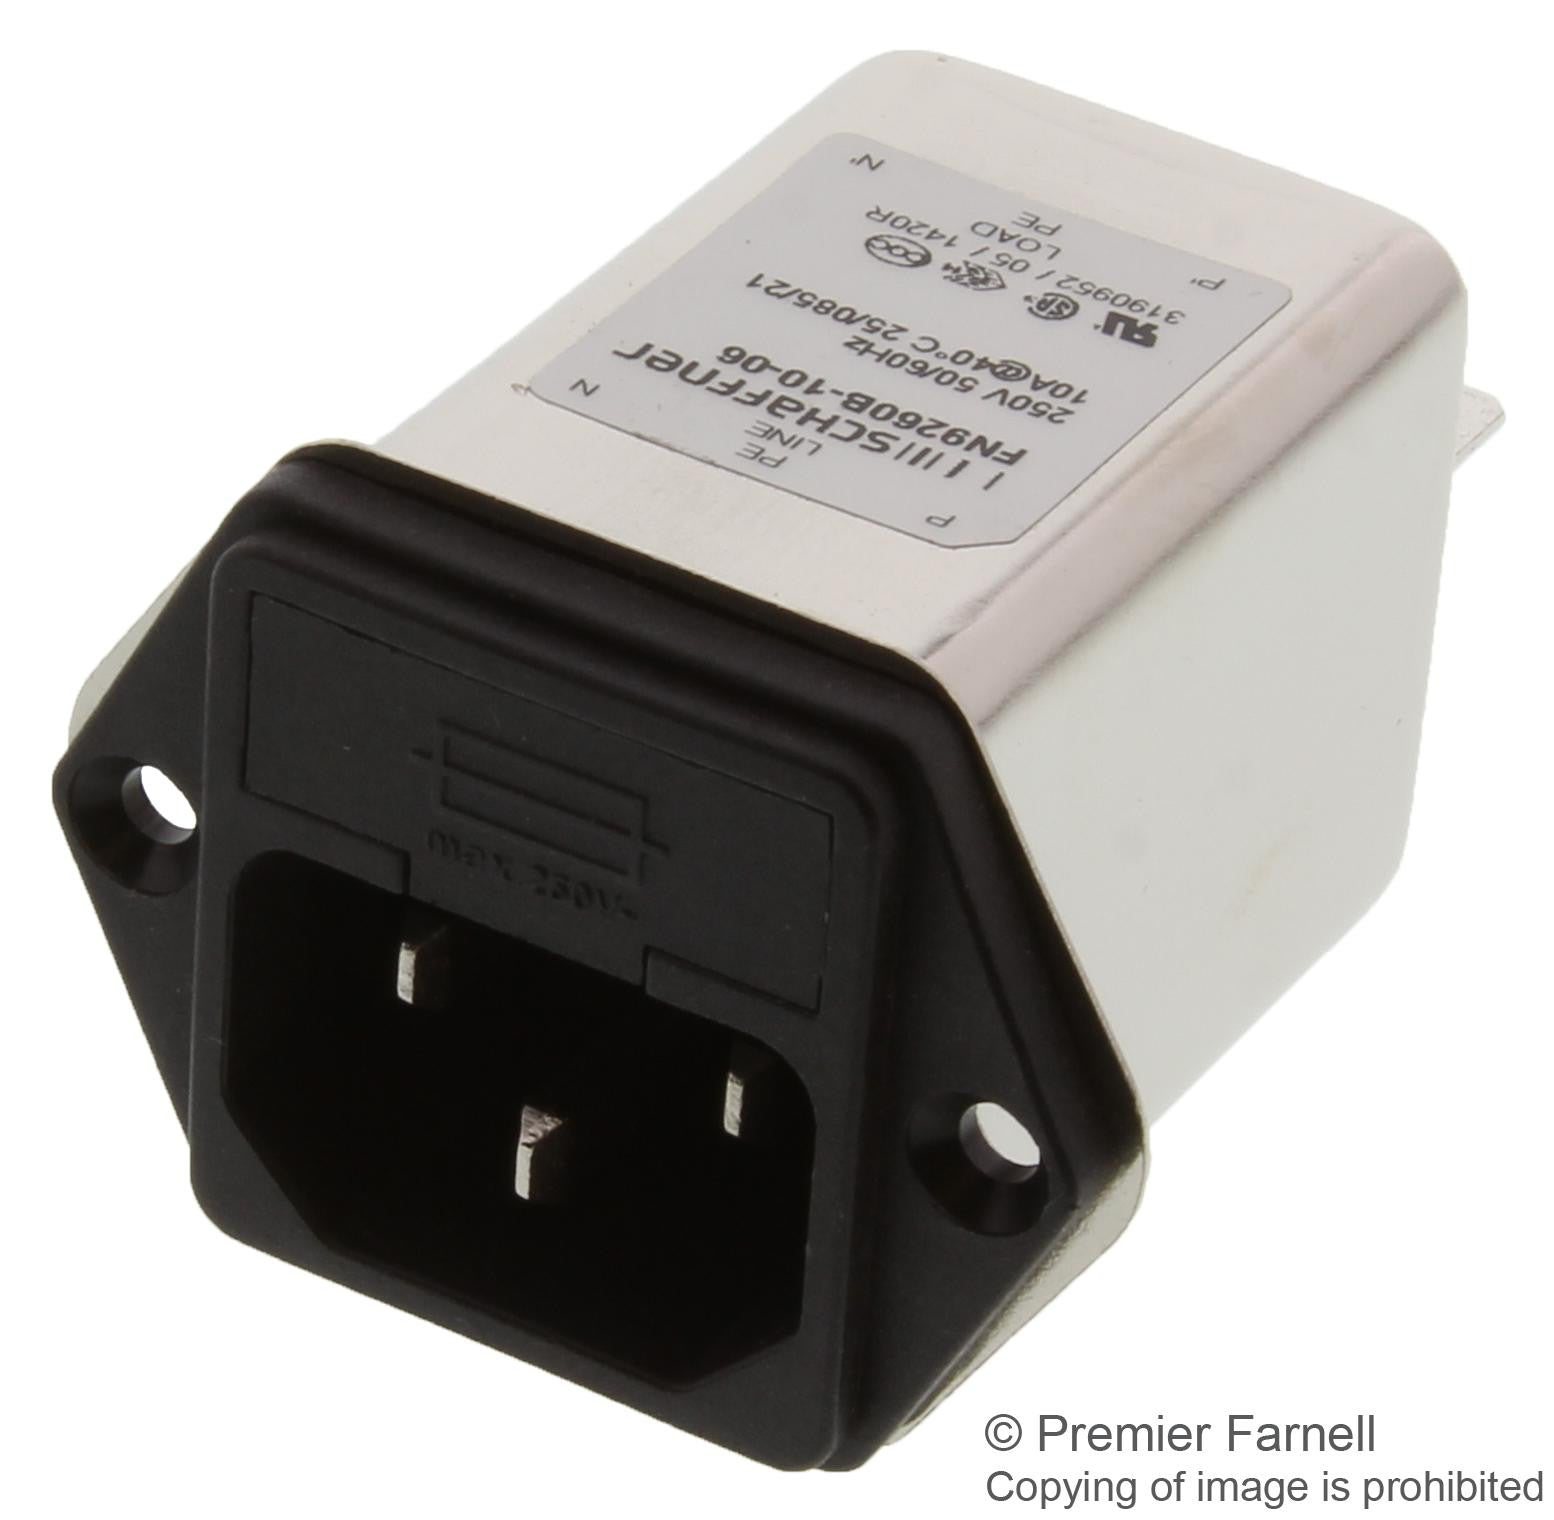 Heavy-Duty Han Series Receptacle Heavy Duty Connector Pin 25 Contacts 3 Rows, Cable Mount Pack of 2 09210253101